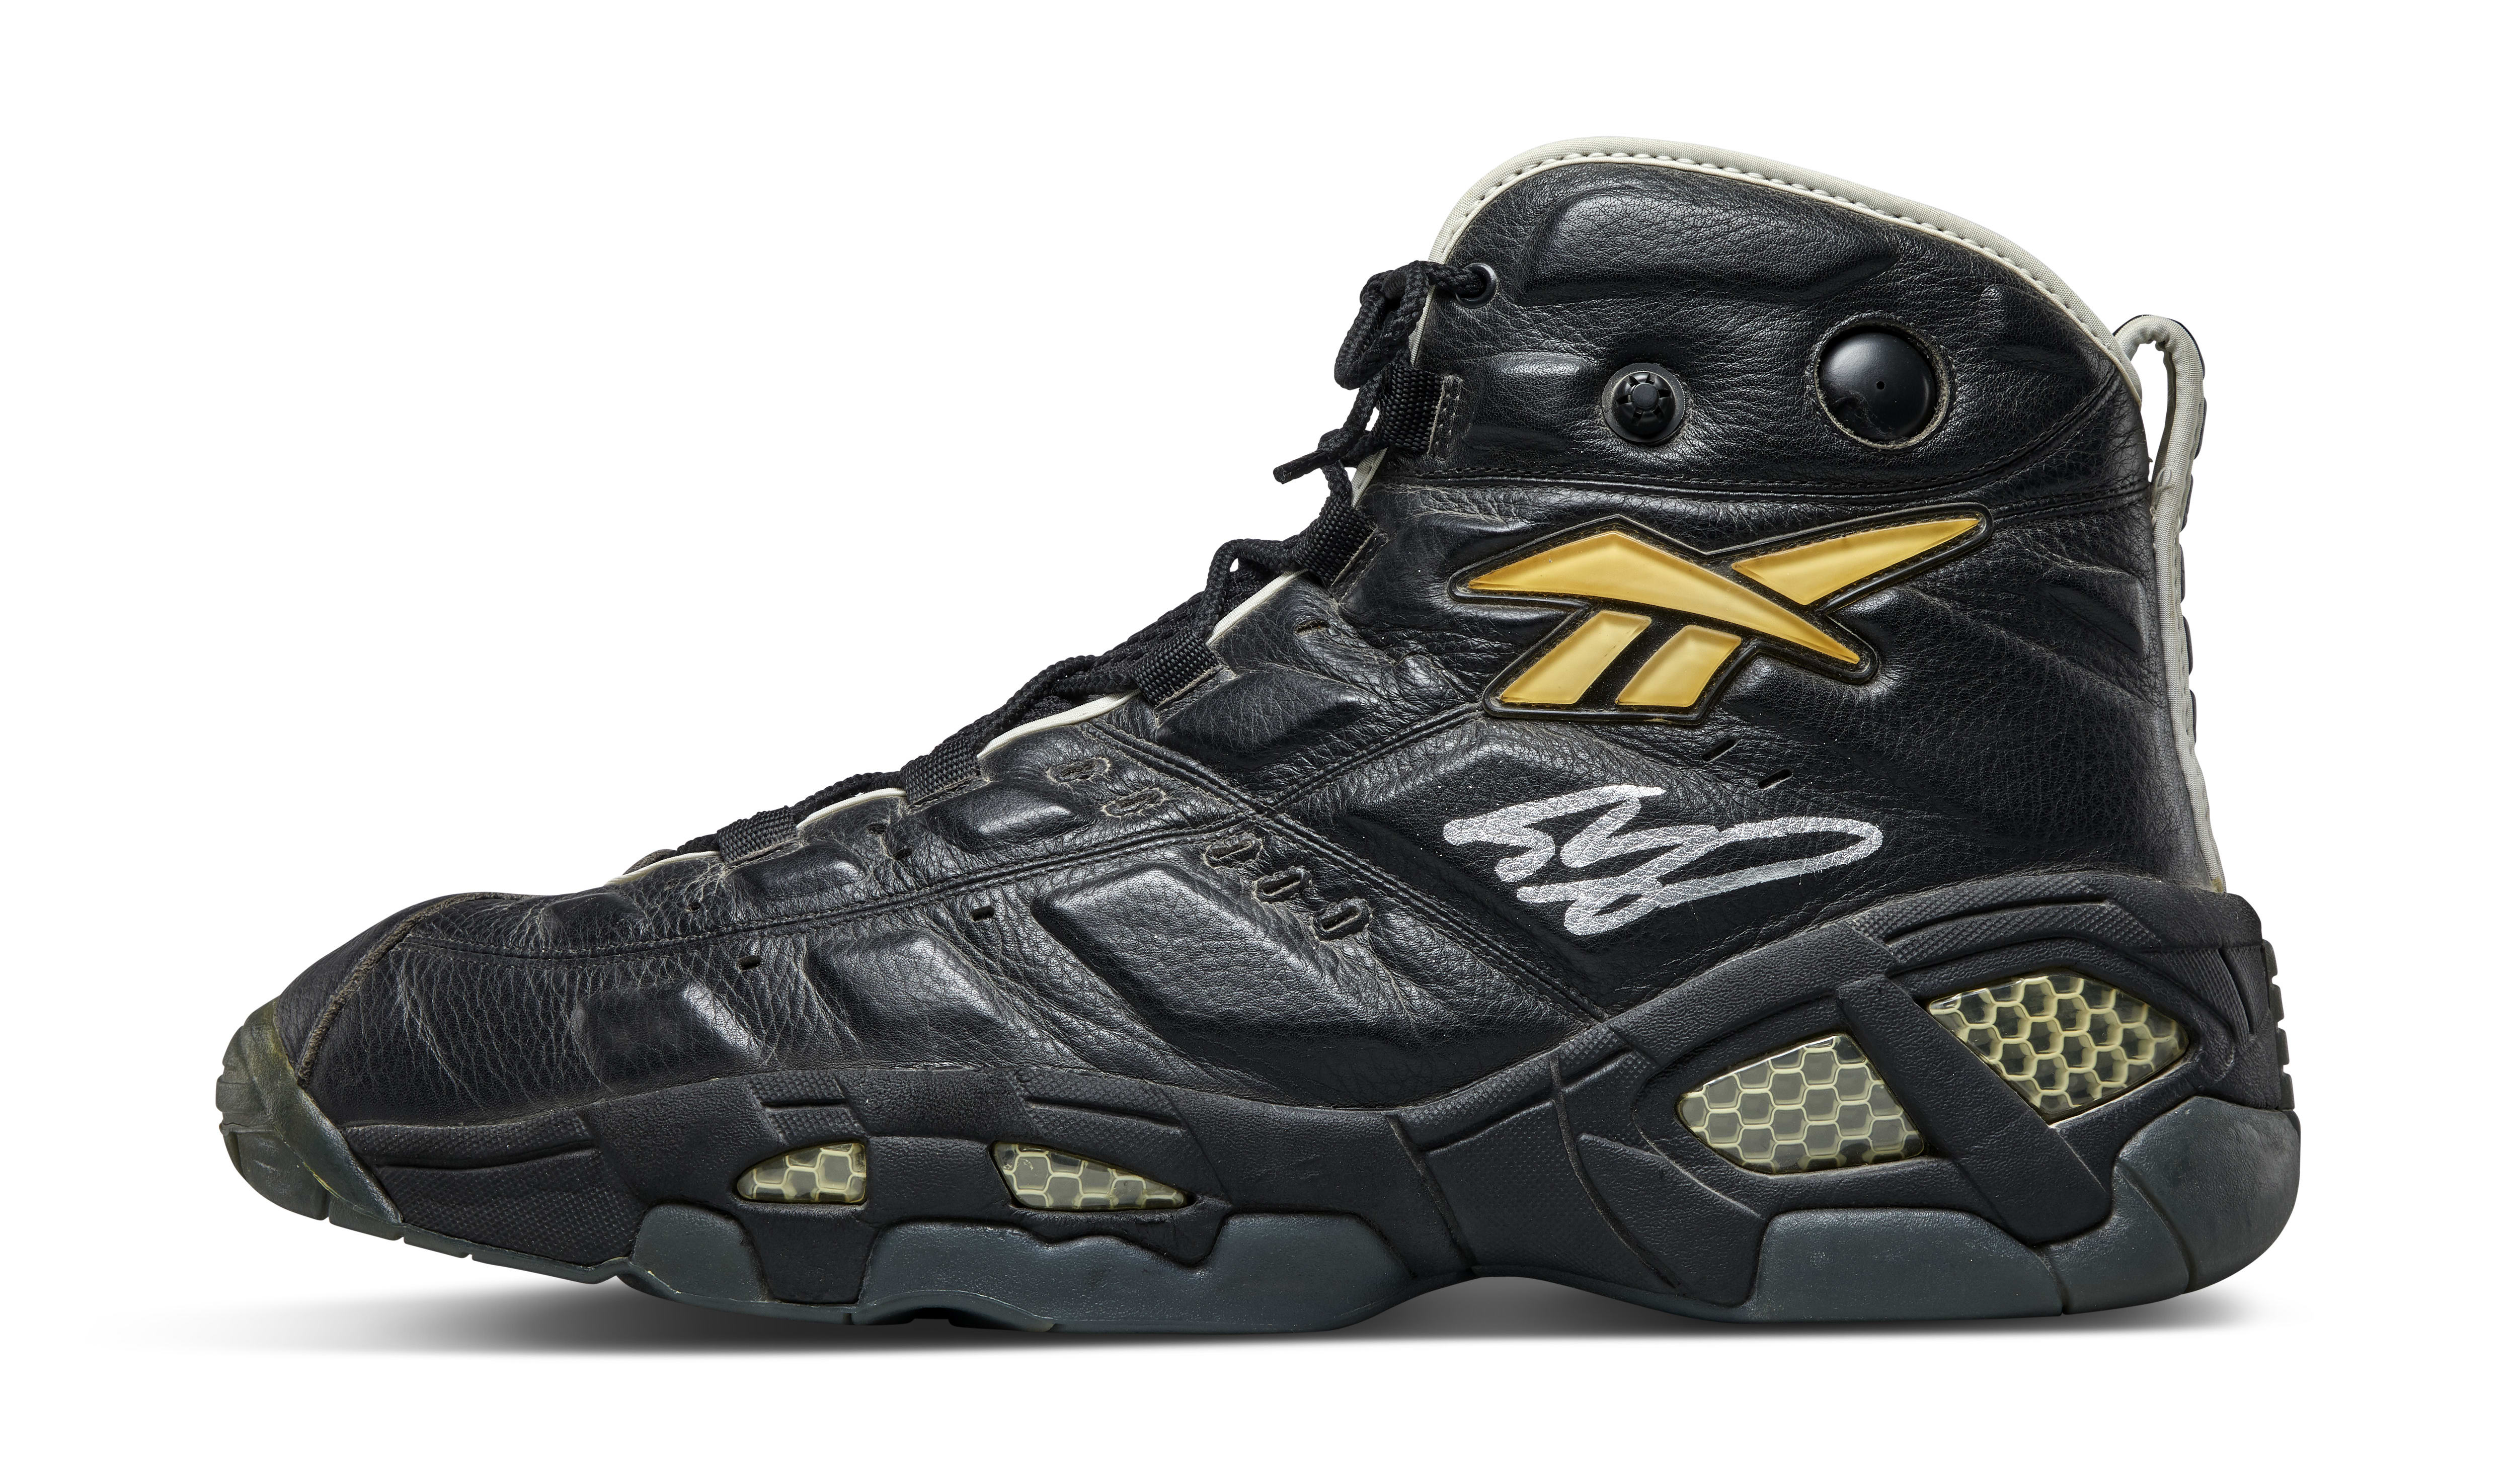 Shaquille O'Neal Game-Worn and Signed Reebok Pump PE